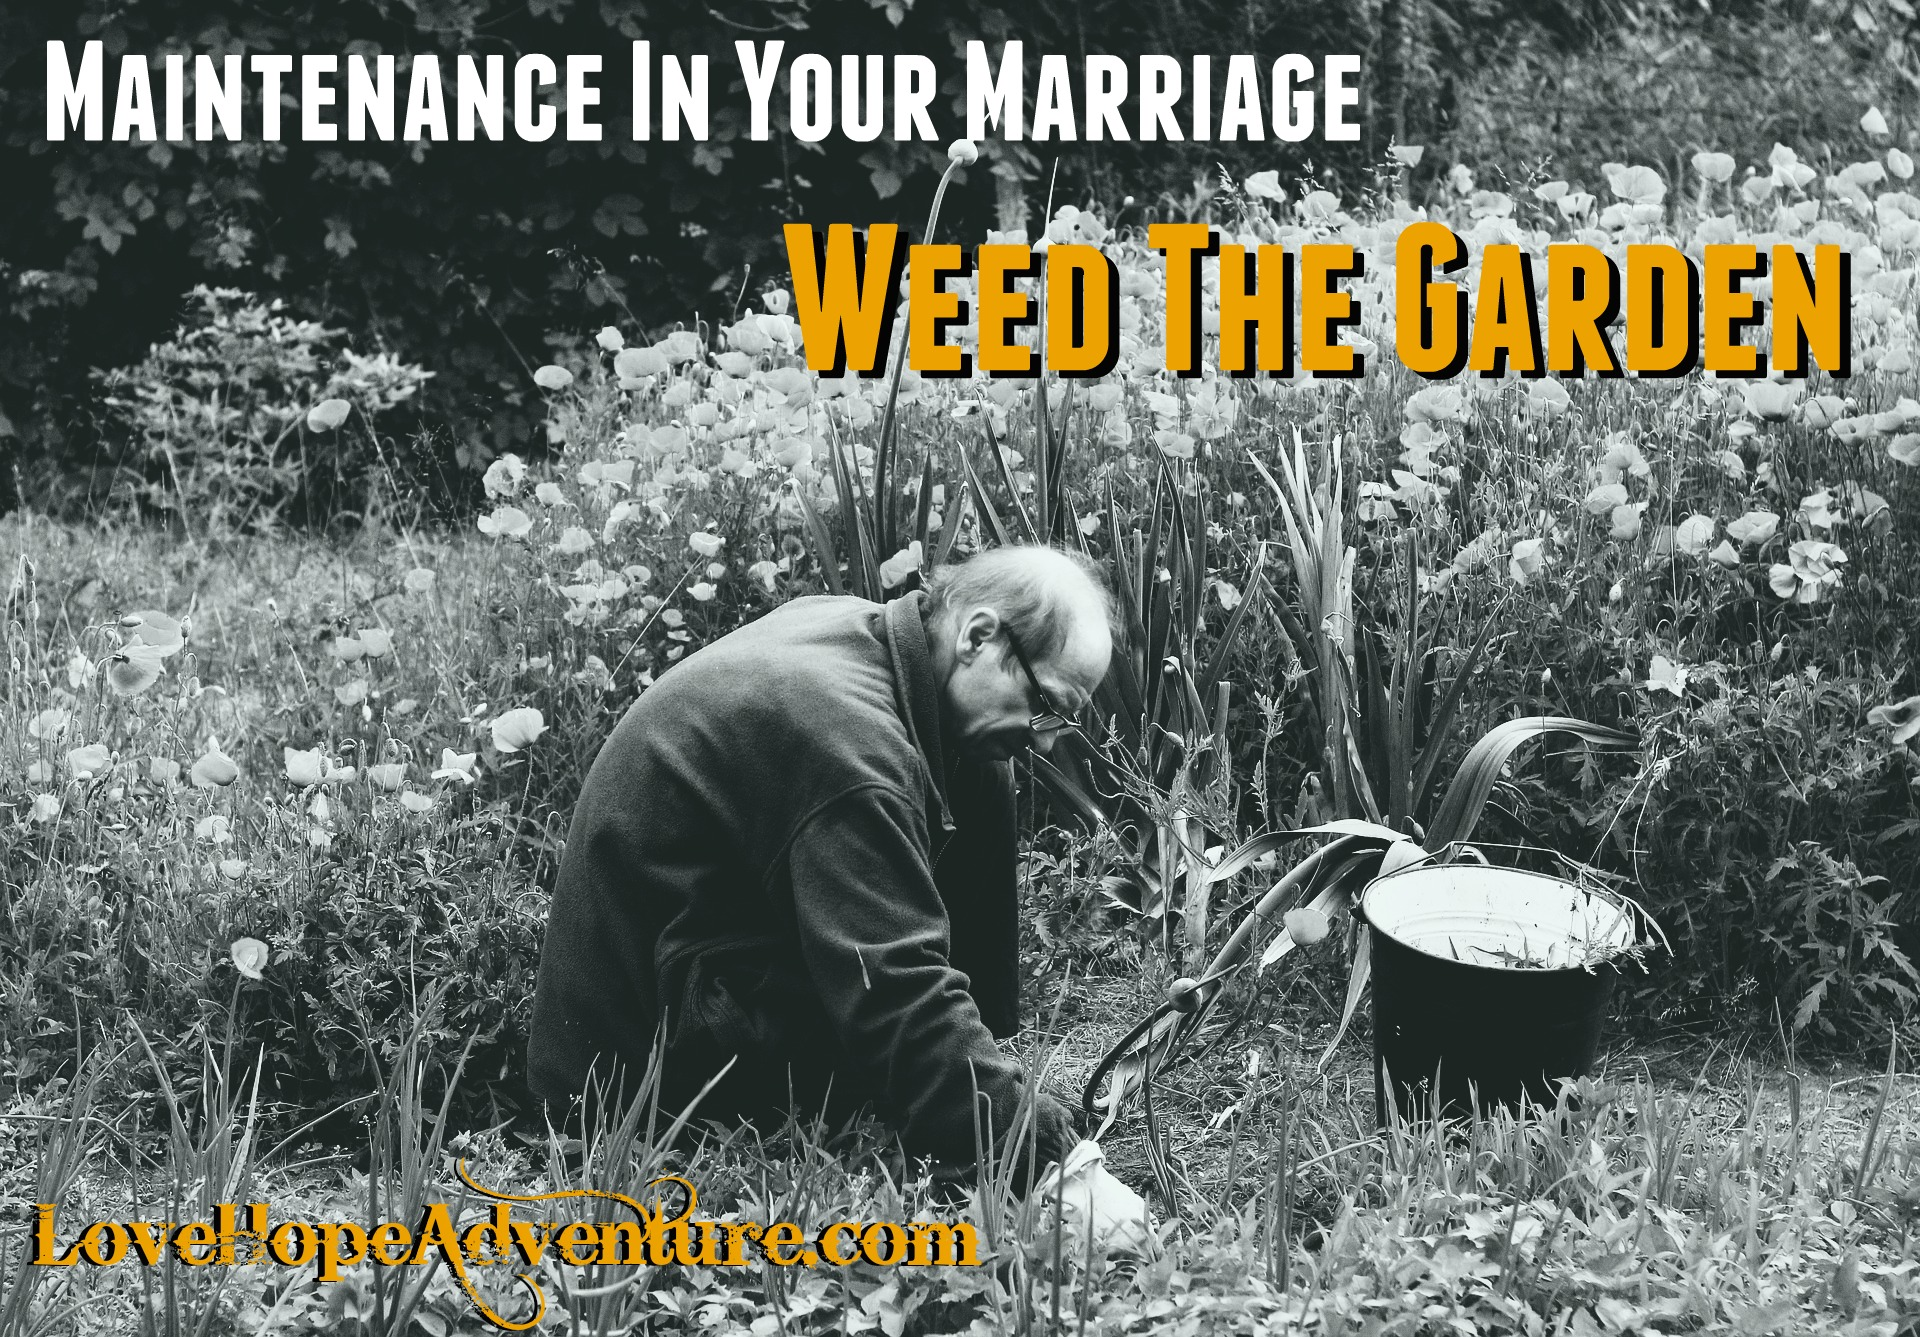 Maintenance In Your Marriage - Weed the Garden